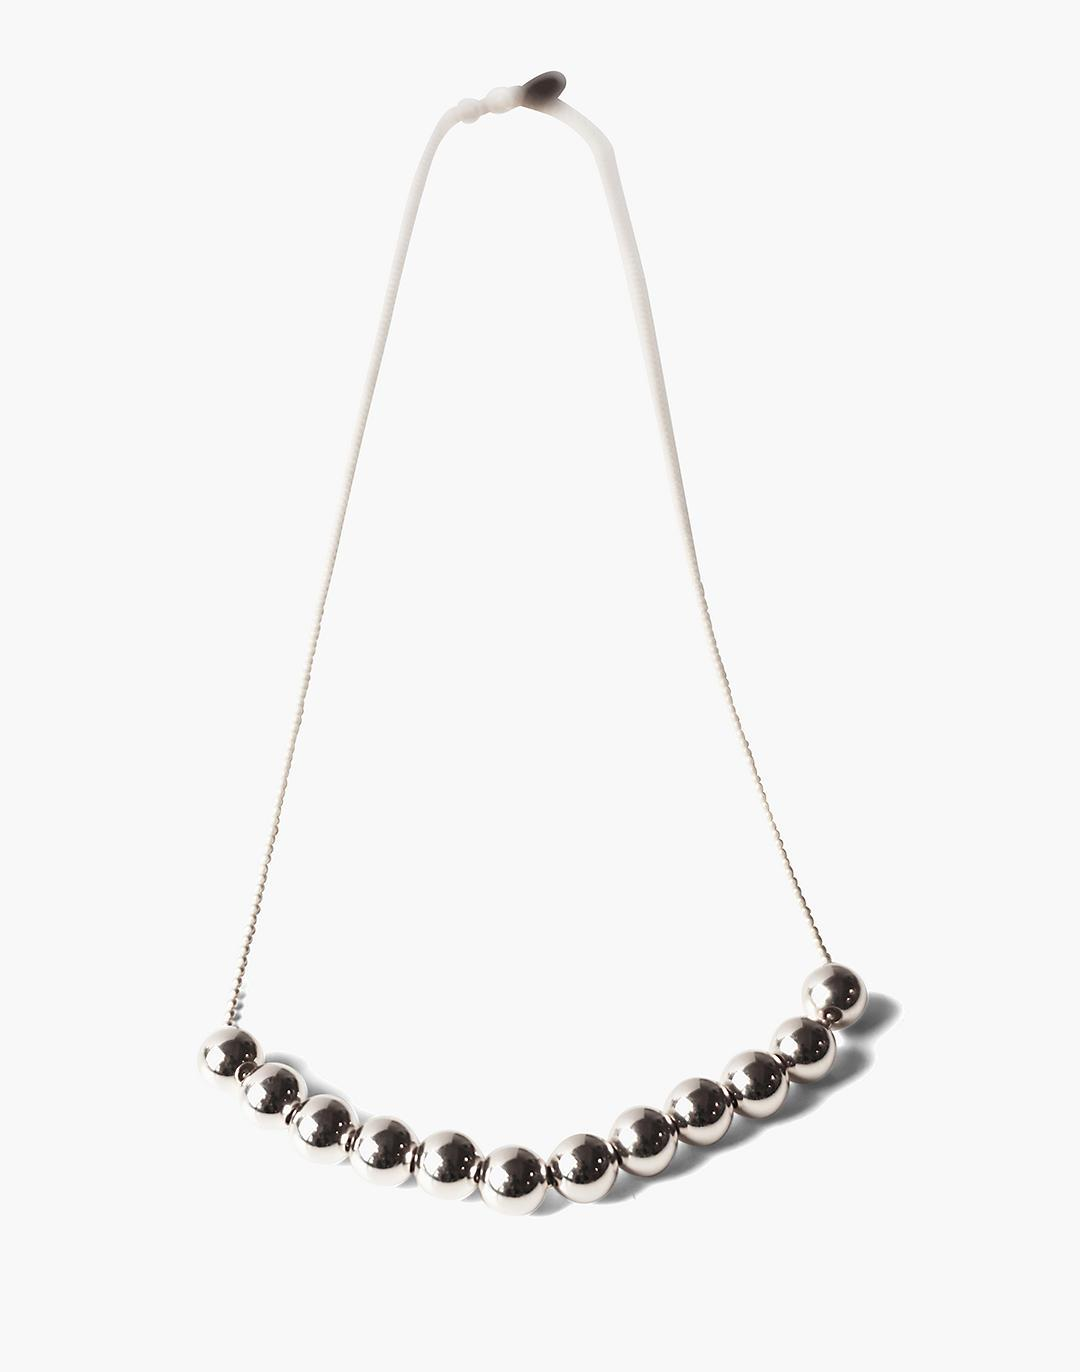 Charlotte Cauwe Studio Bead Chain in Sterling Silver